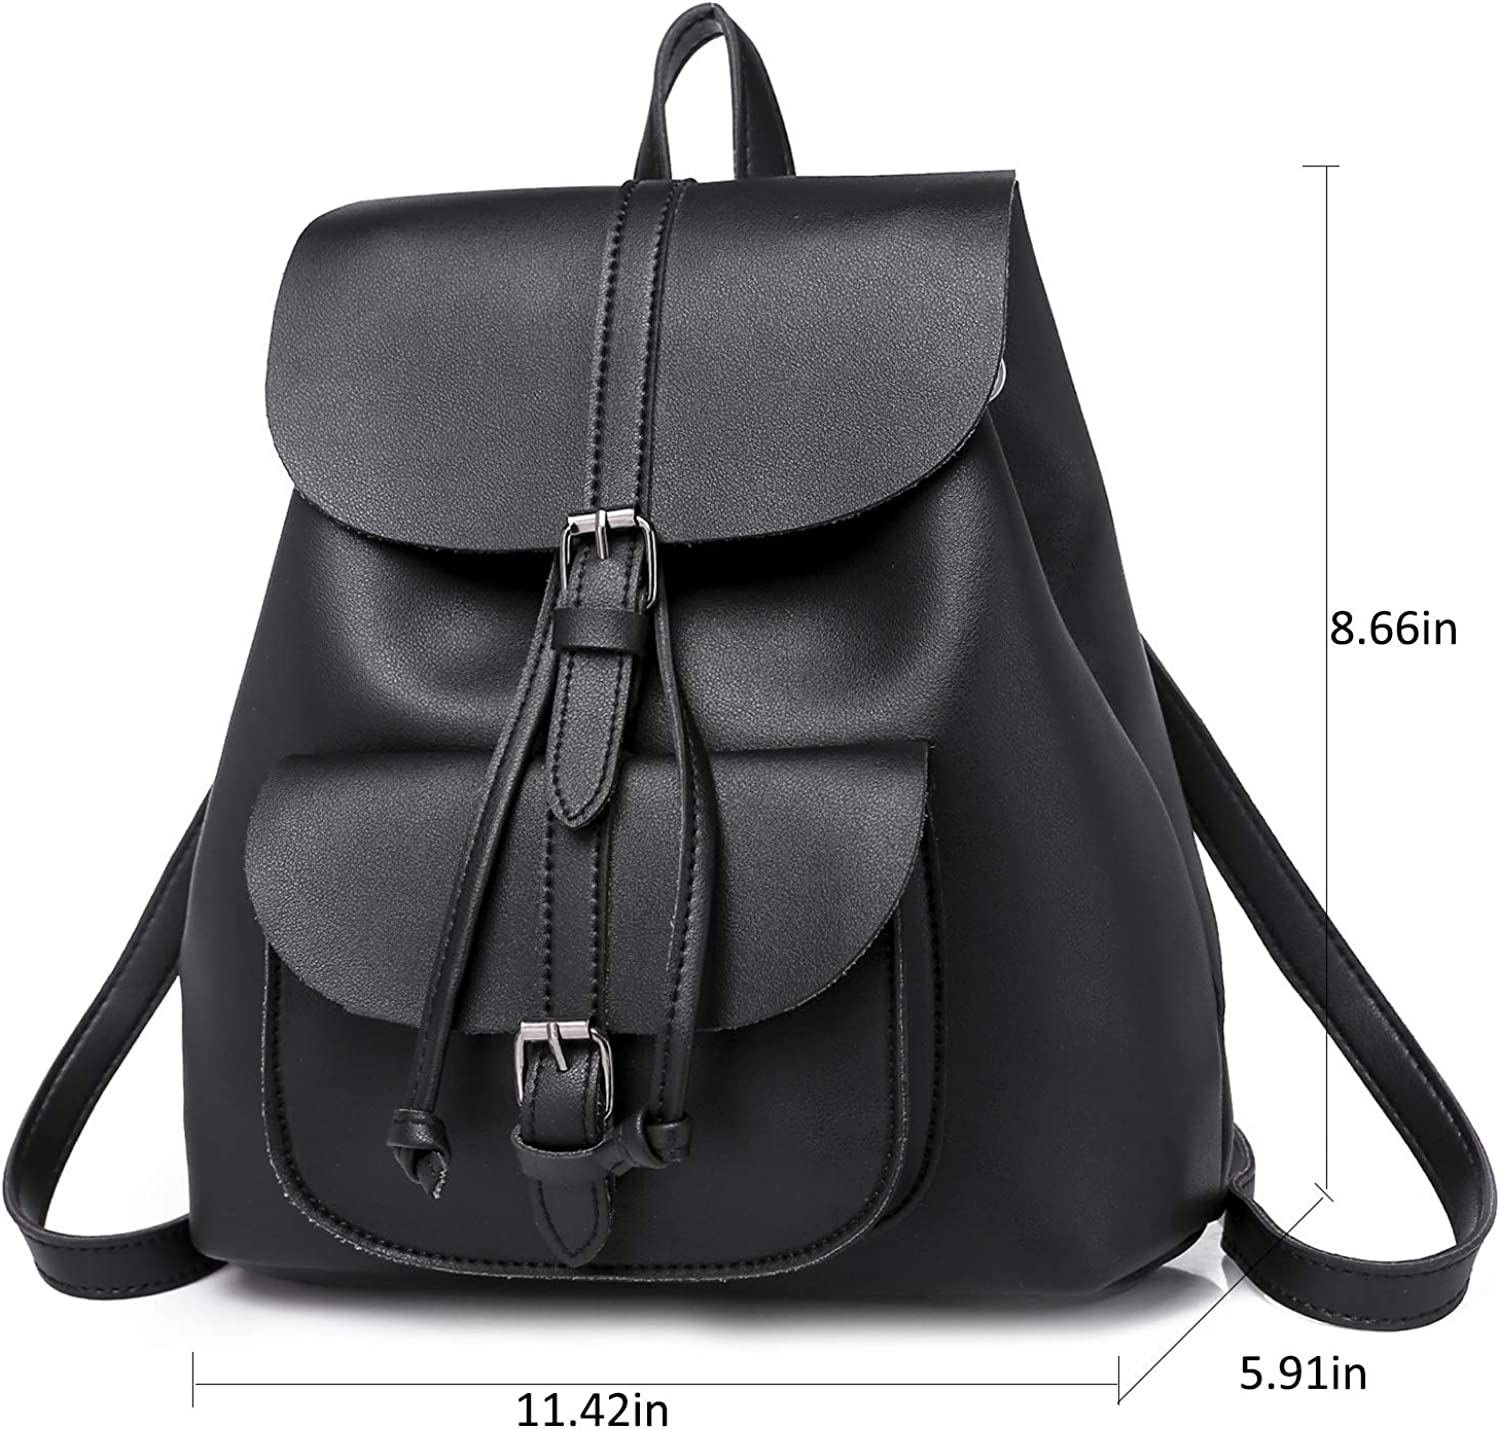 YanHao Retro Backpack Fashion Drawstring Flap Cover Travel Rucksack Backpack School Bag for Women Ladies